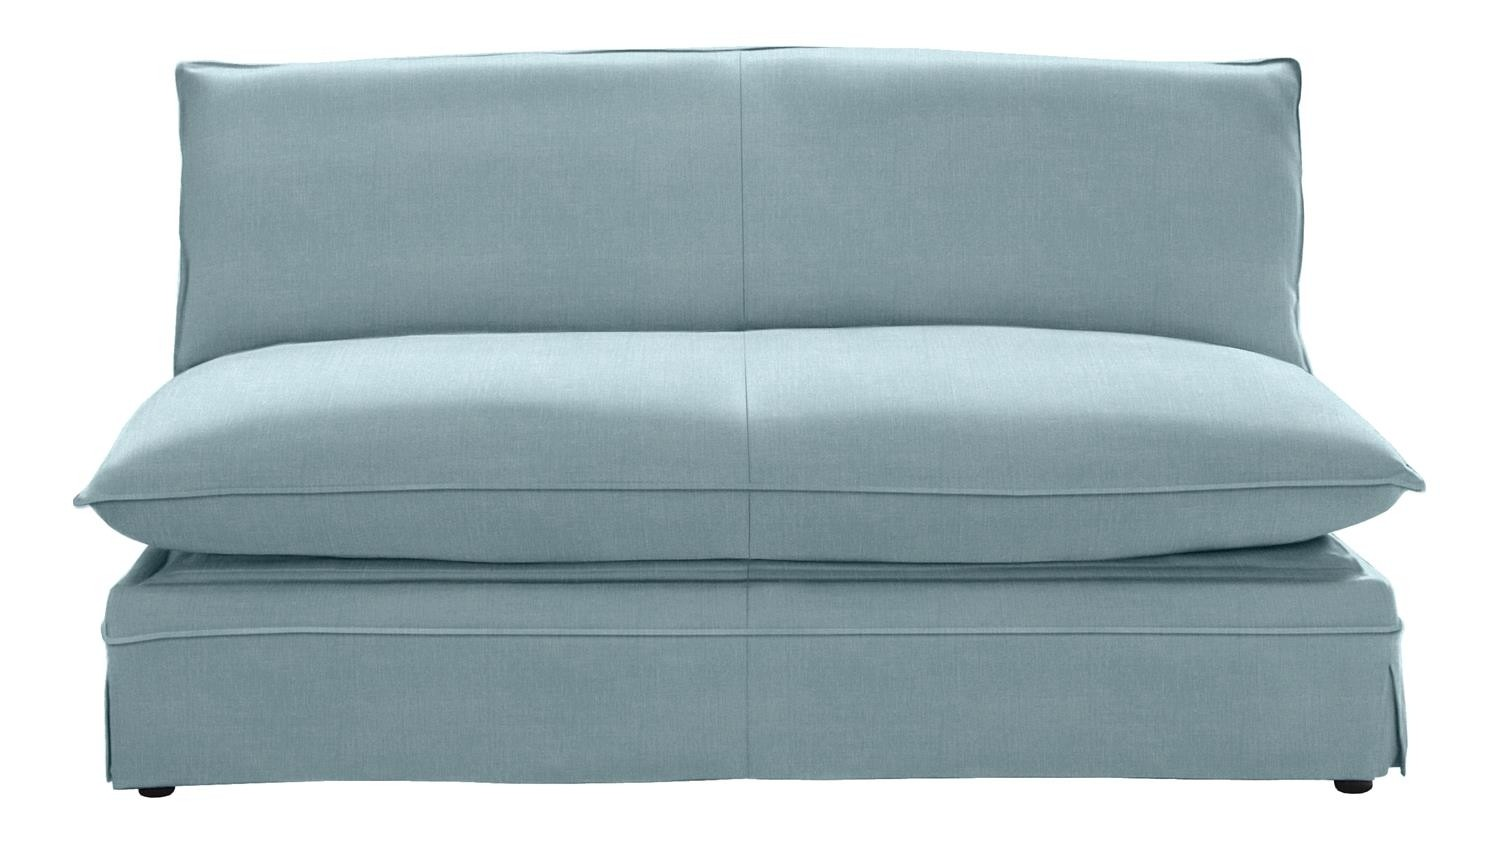 The Deverill 2 Seater Sofa Bed